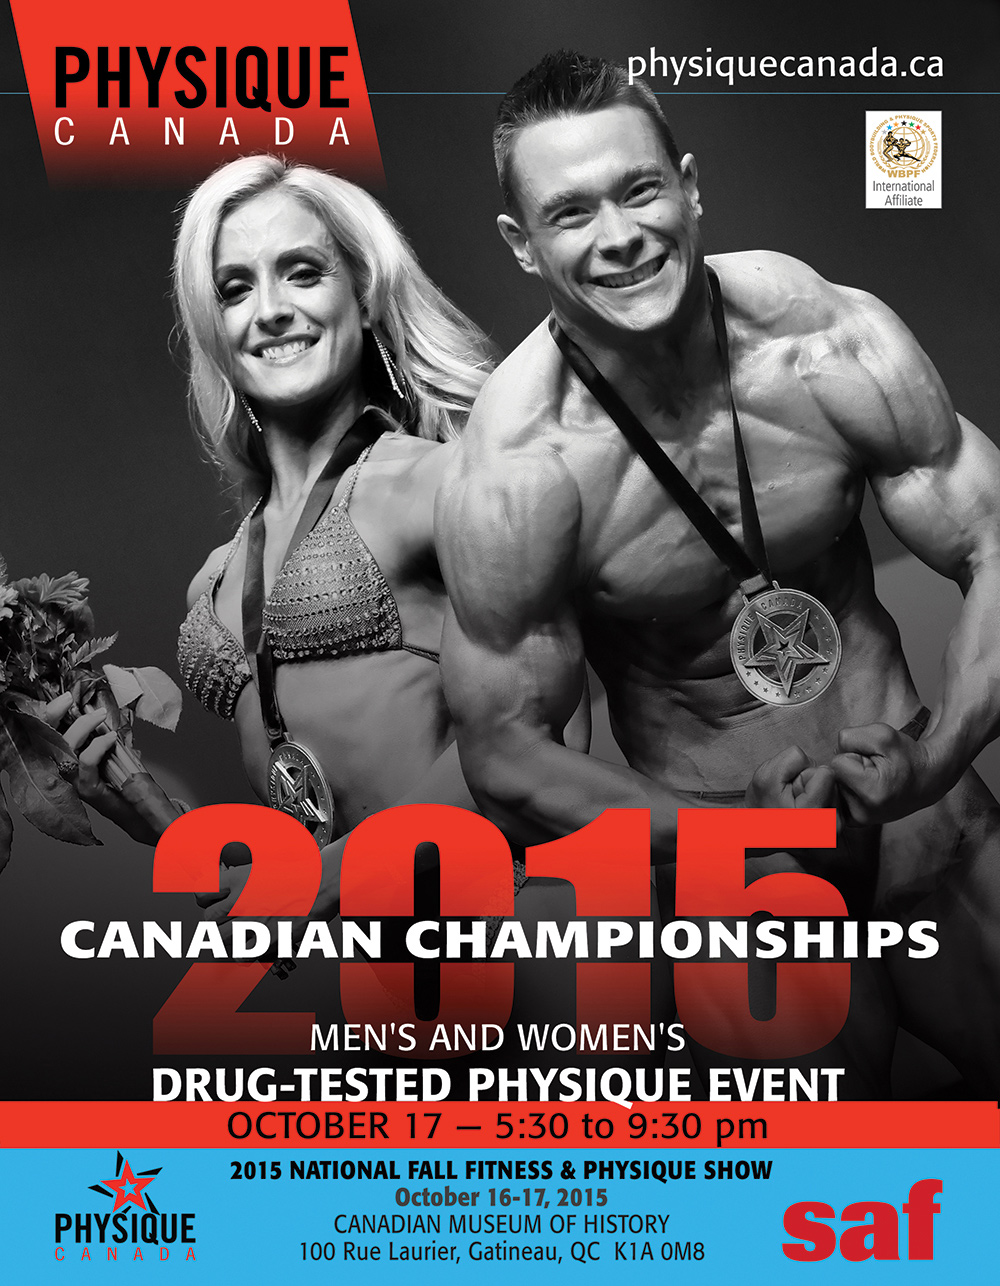 2015 Physique Canada Canadian Championships